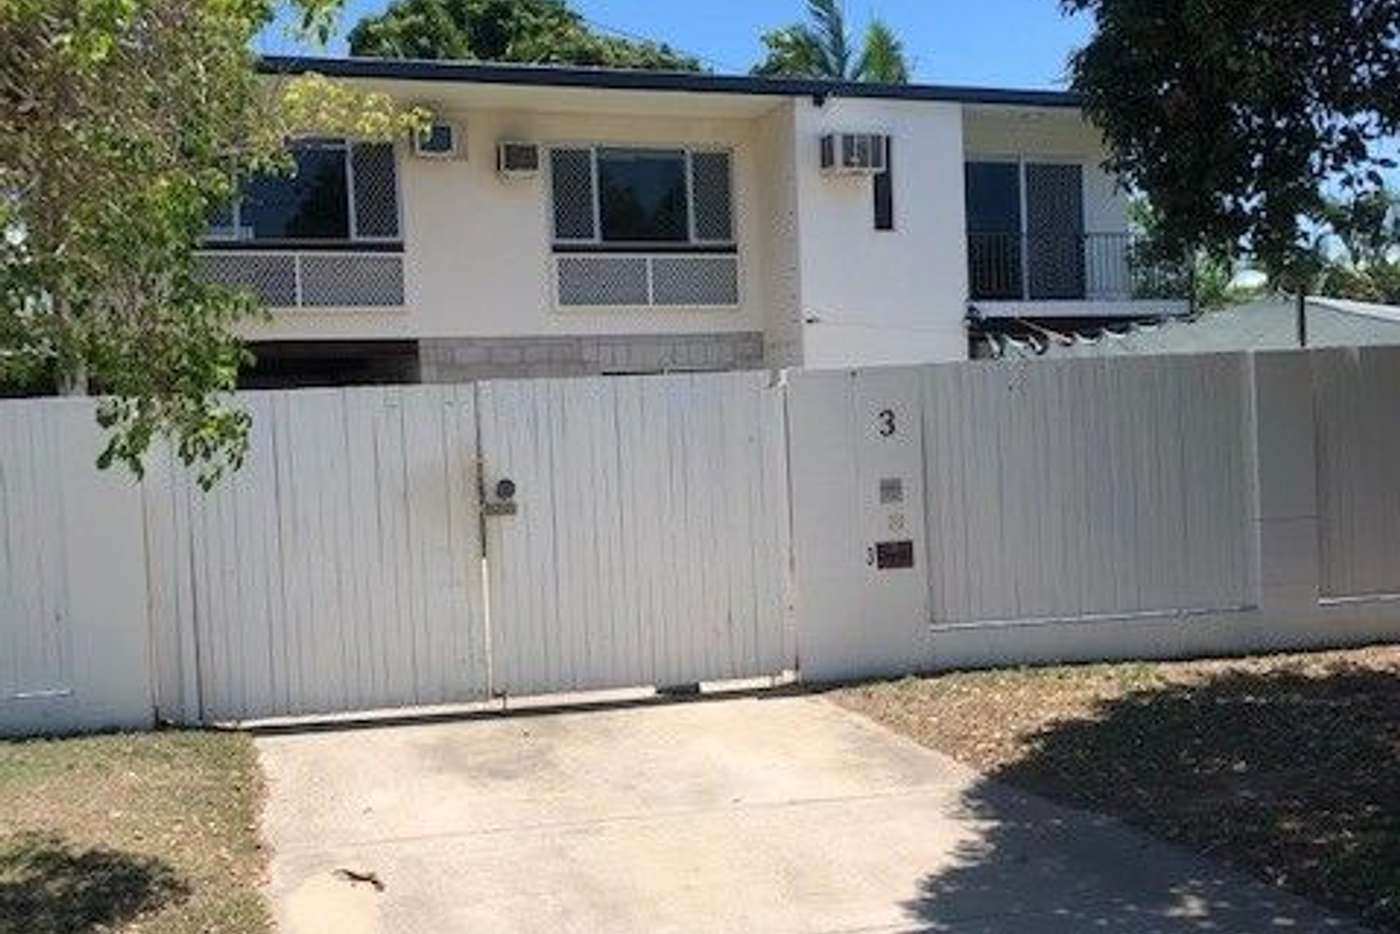 Main view of Homely house listing, 3 Marsh Street, Heatley QLD 4814